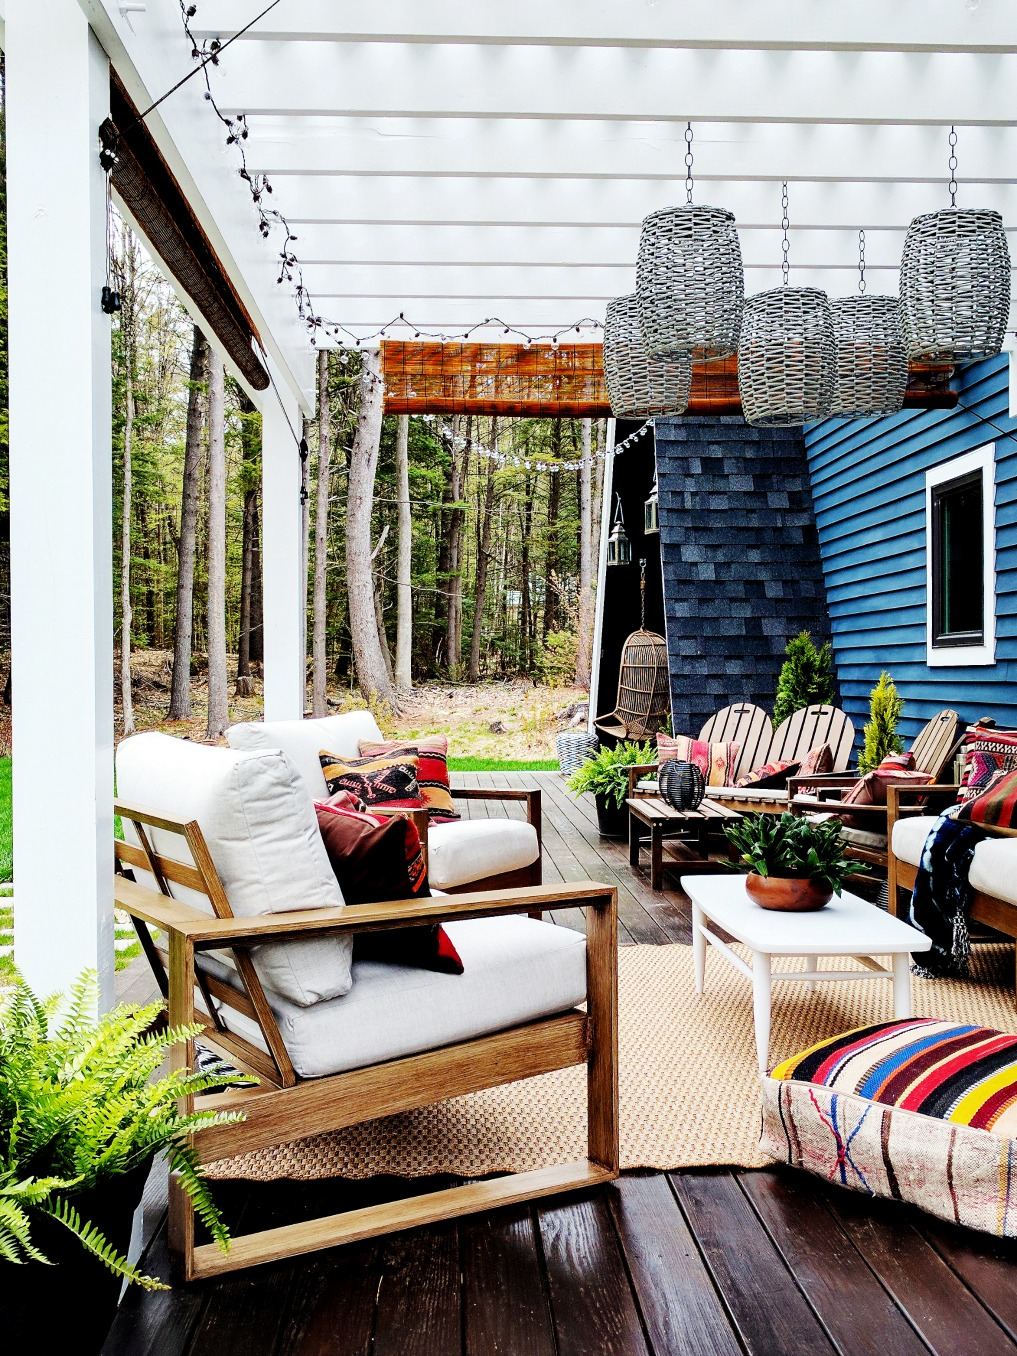 Eclectic Home Tour - Insieme House - tour this tiny house that has a gorgeous outdoor deck with boho flair